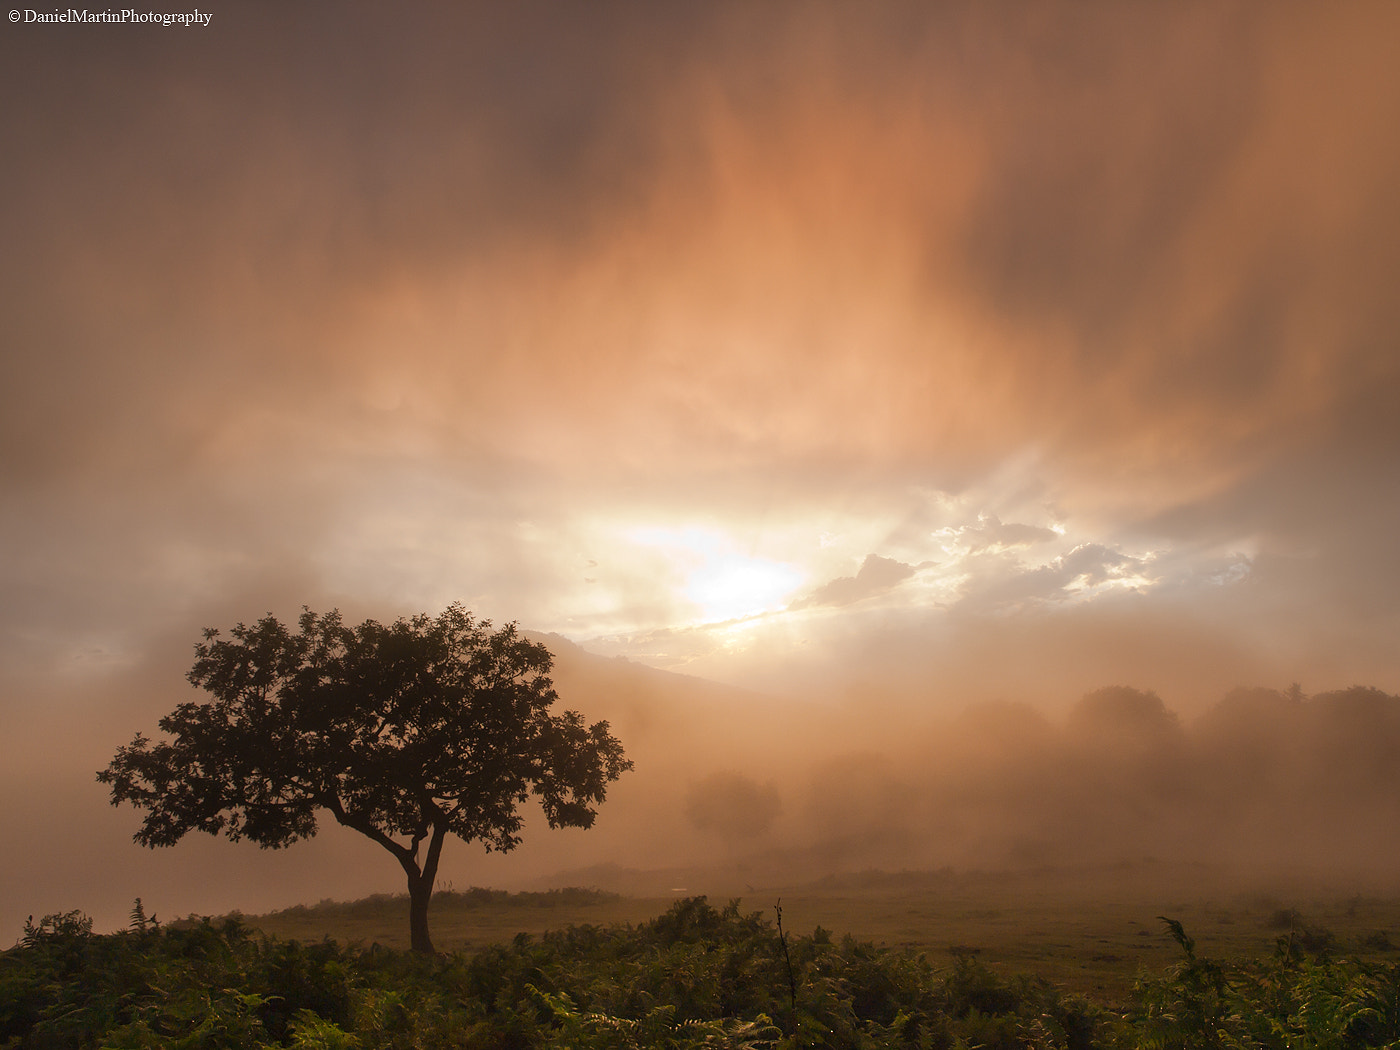 Photograph storm of mist and fire by Daniel Martin. on 500px